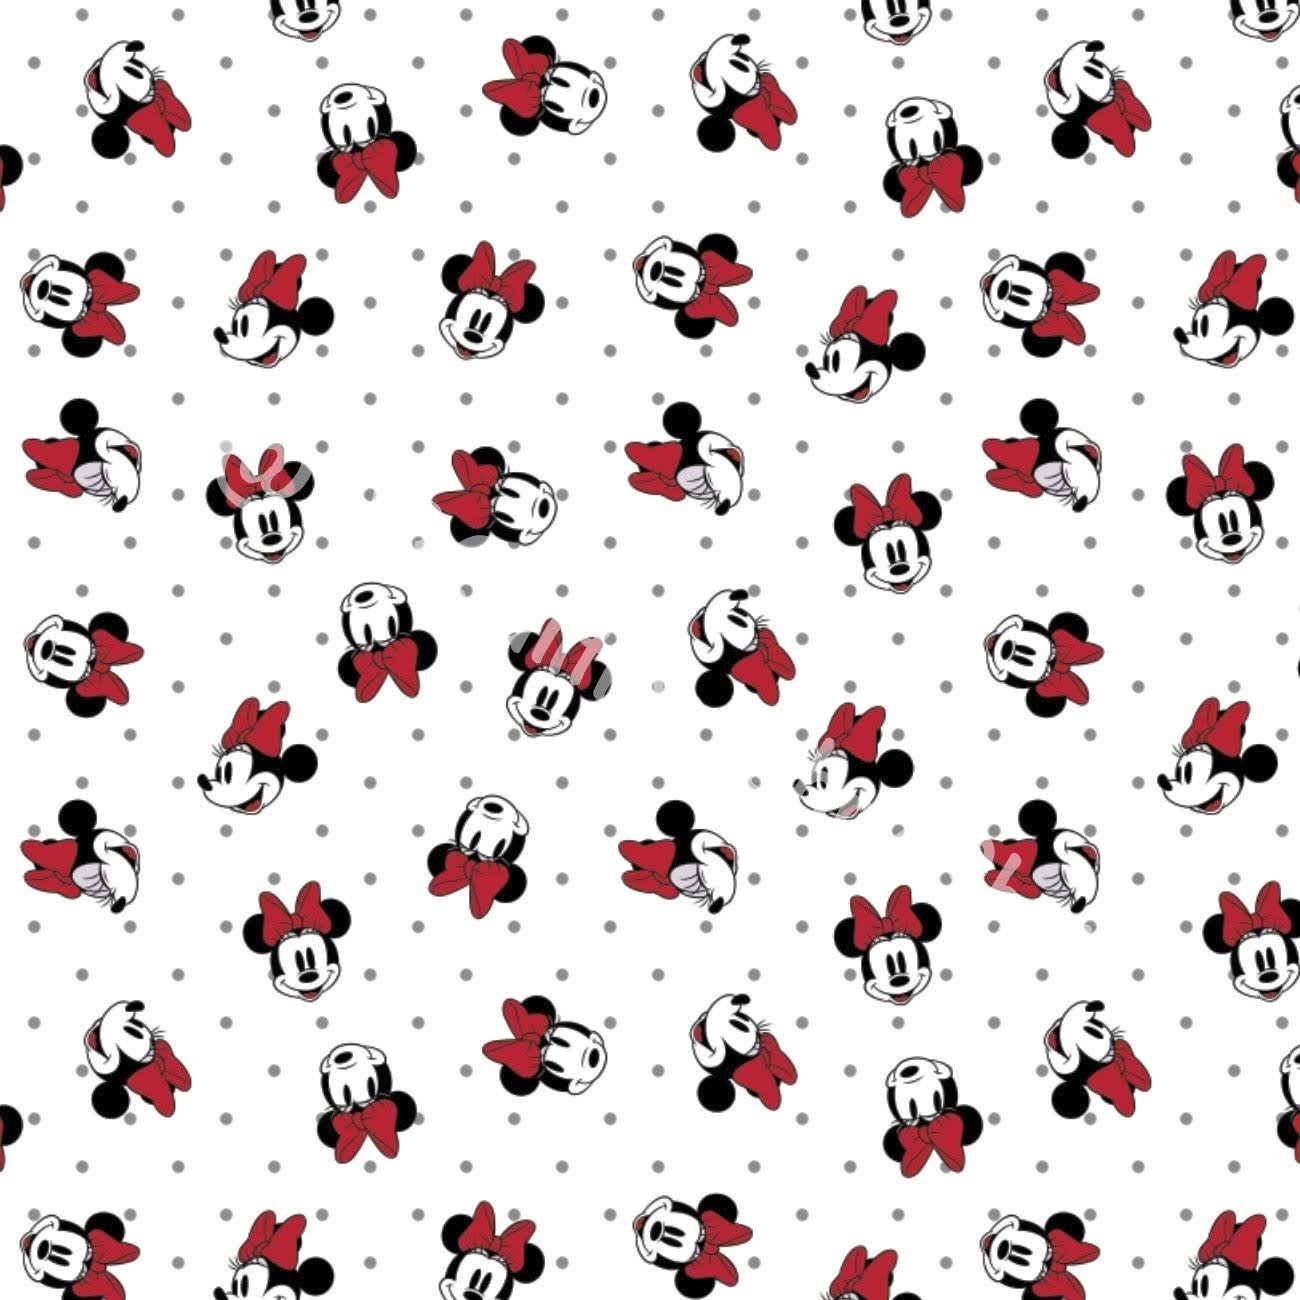 Camelot Disney Minnie Mouse Dreaming In Dots White